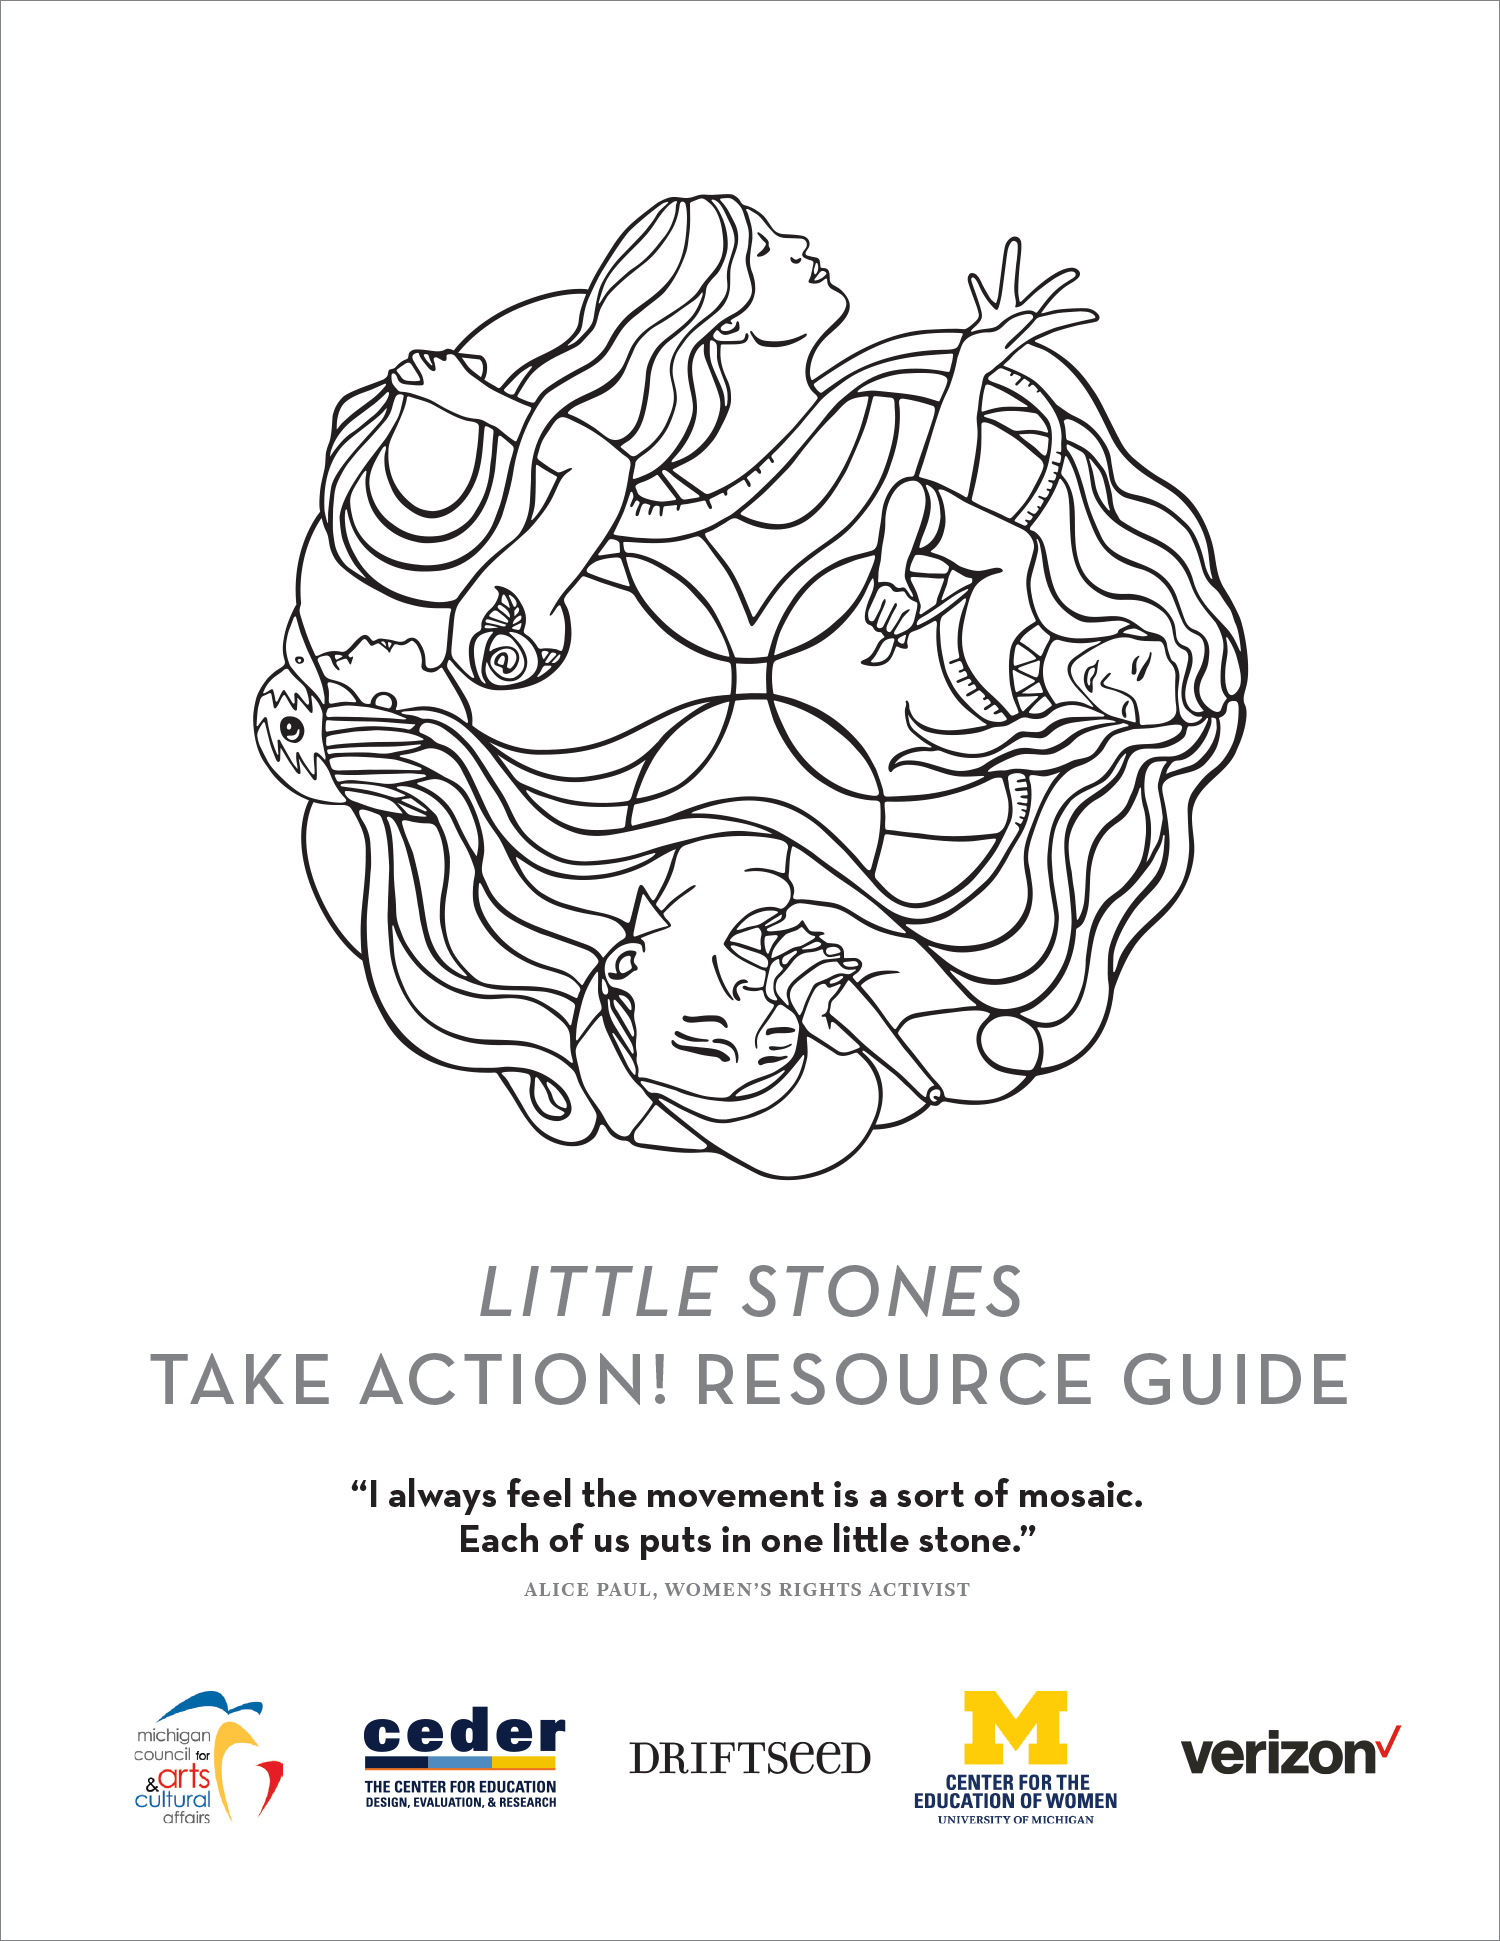 littlestones_resources-01.png